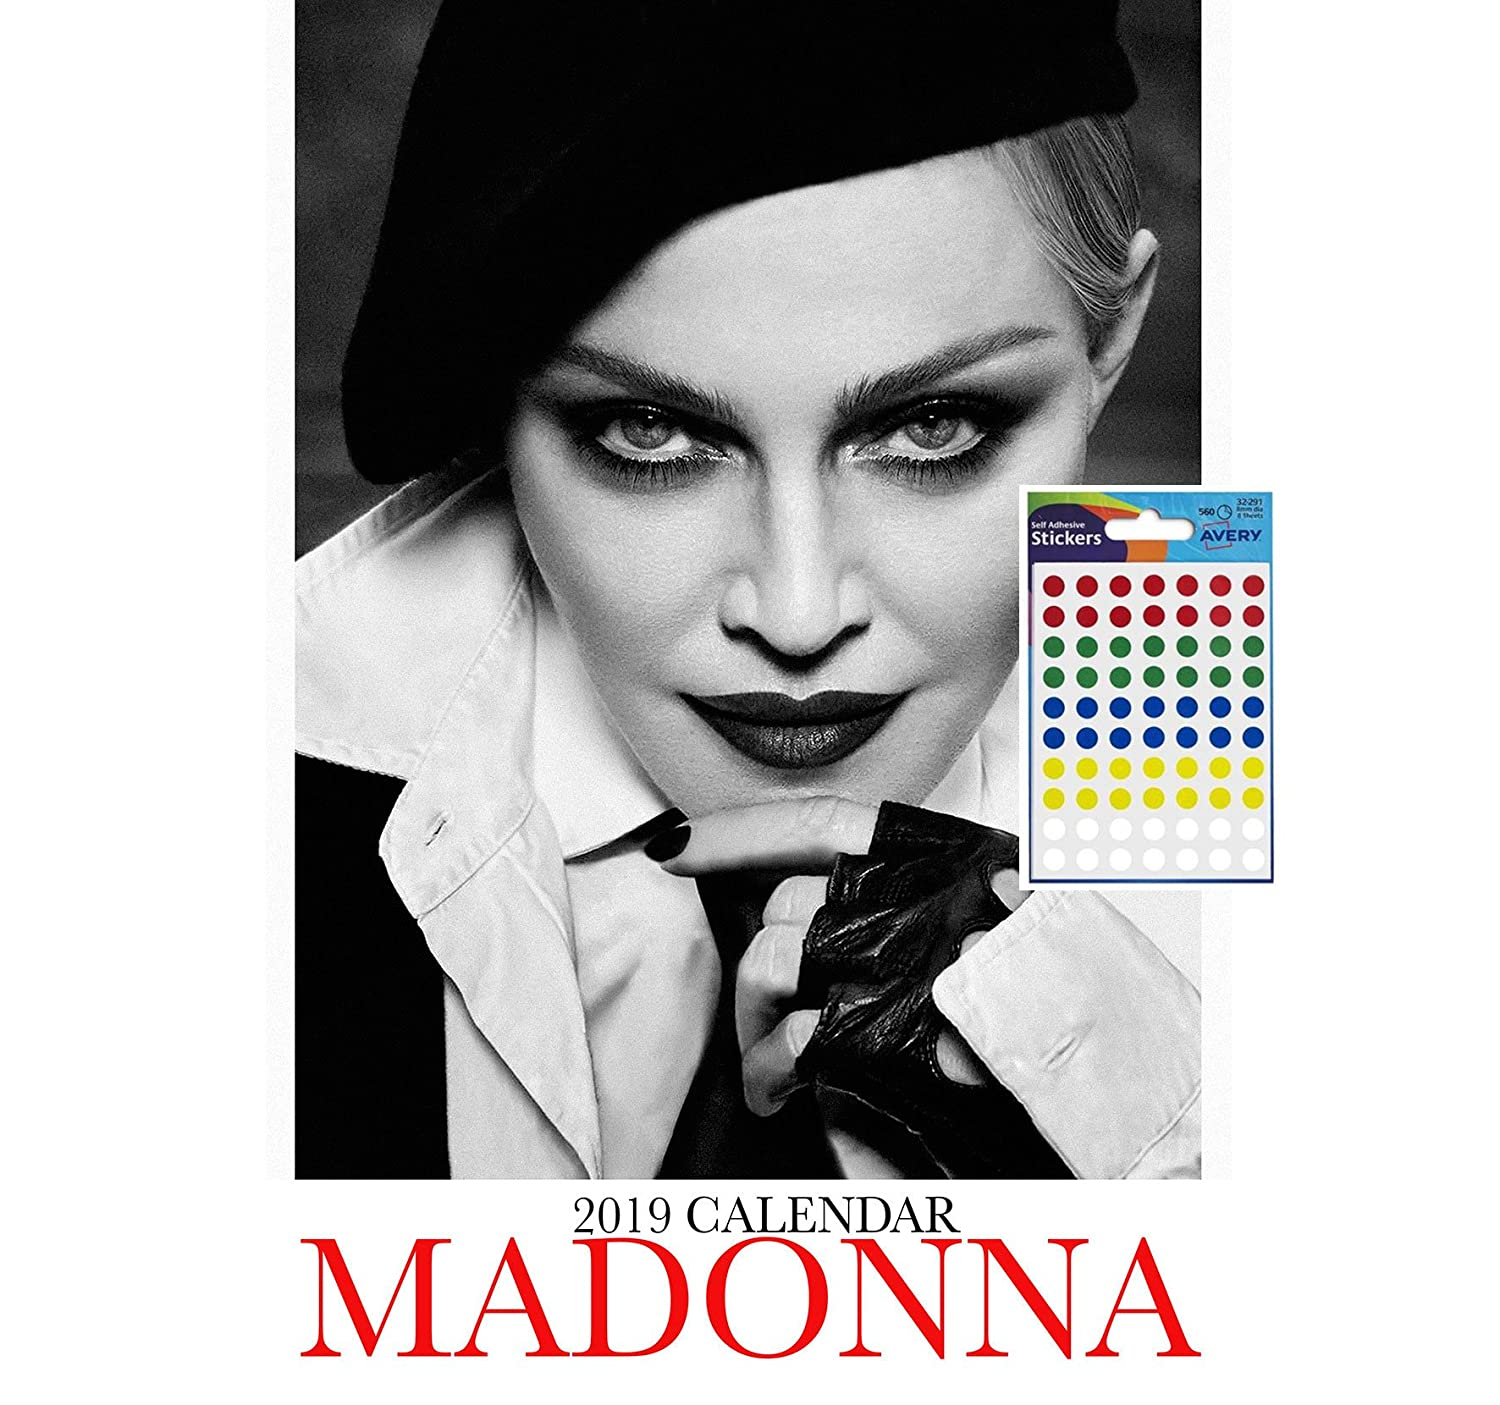 iPosters Bundle - 2 Items - Madonna 2019 Wall Calendar - Closed Size : 42 x 29.5 cm (16.5 x 11.5 inches) a Sheet 70 Multi Colour Self Adhesive Dot Stickers